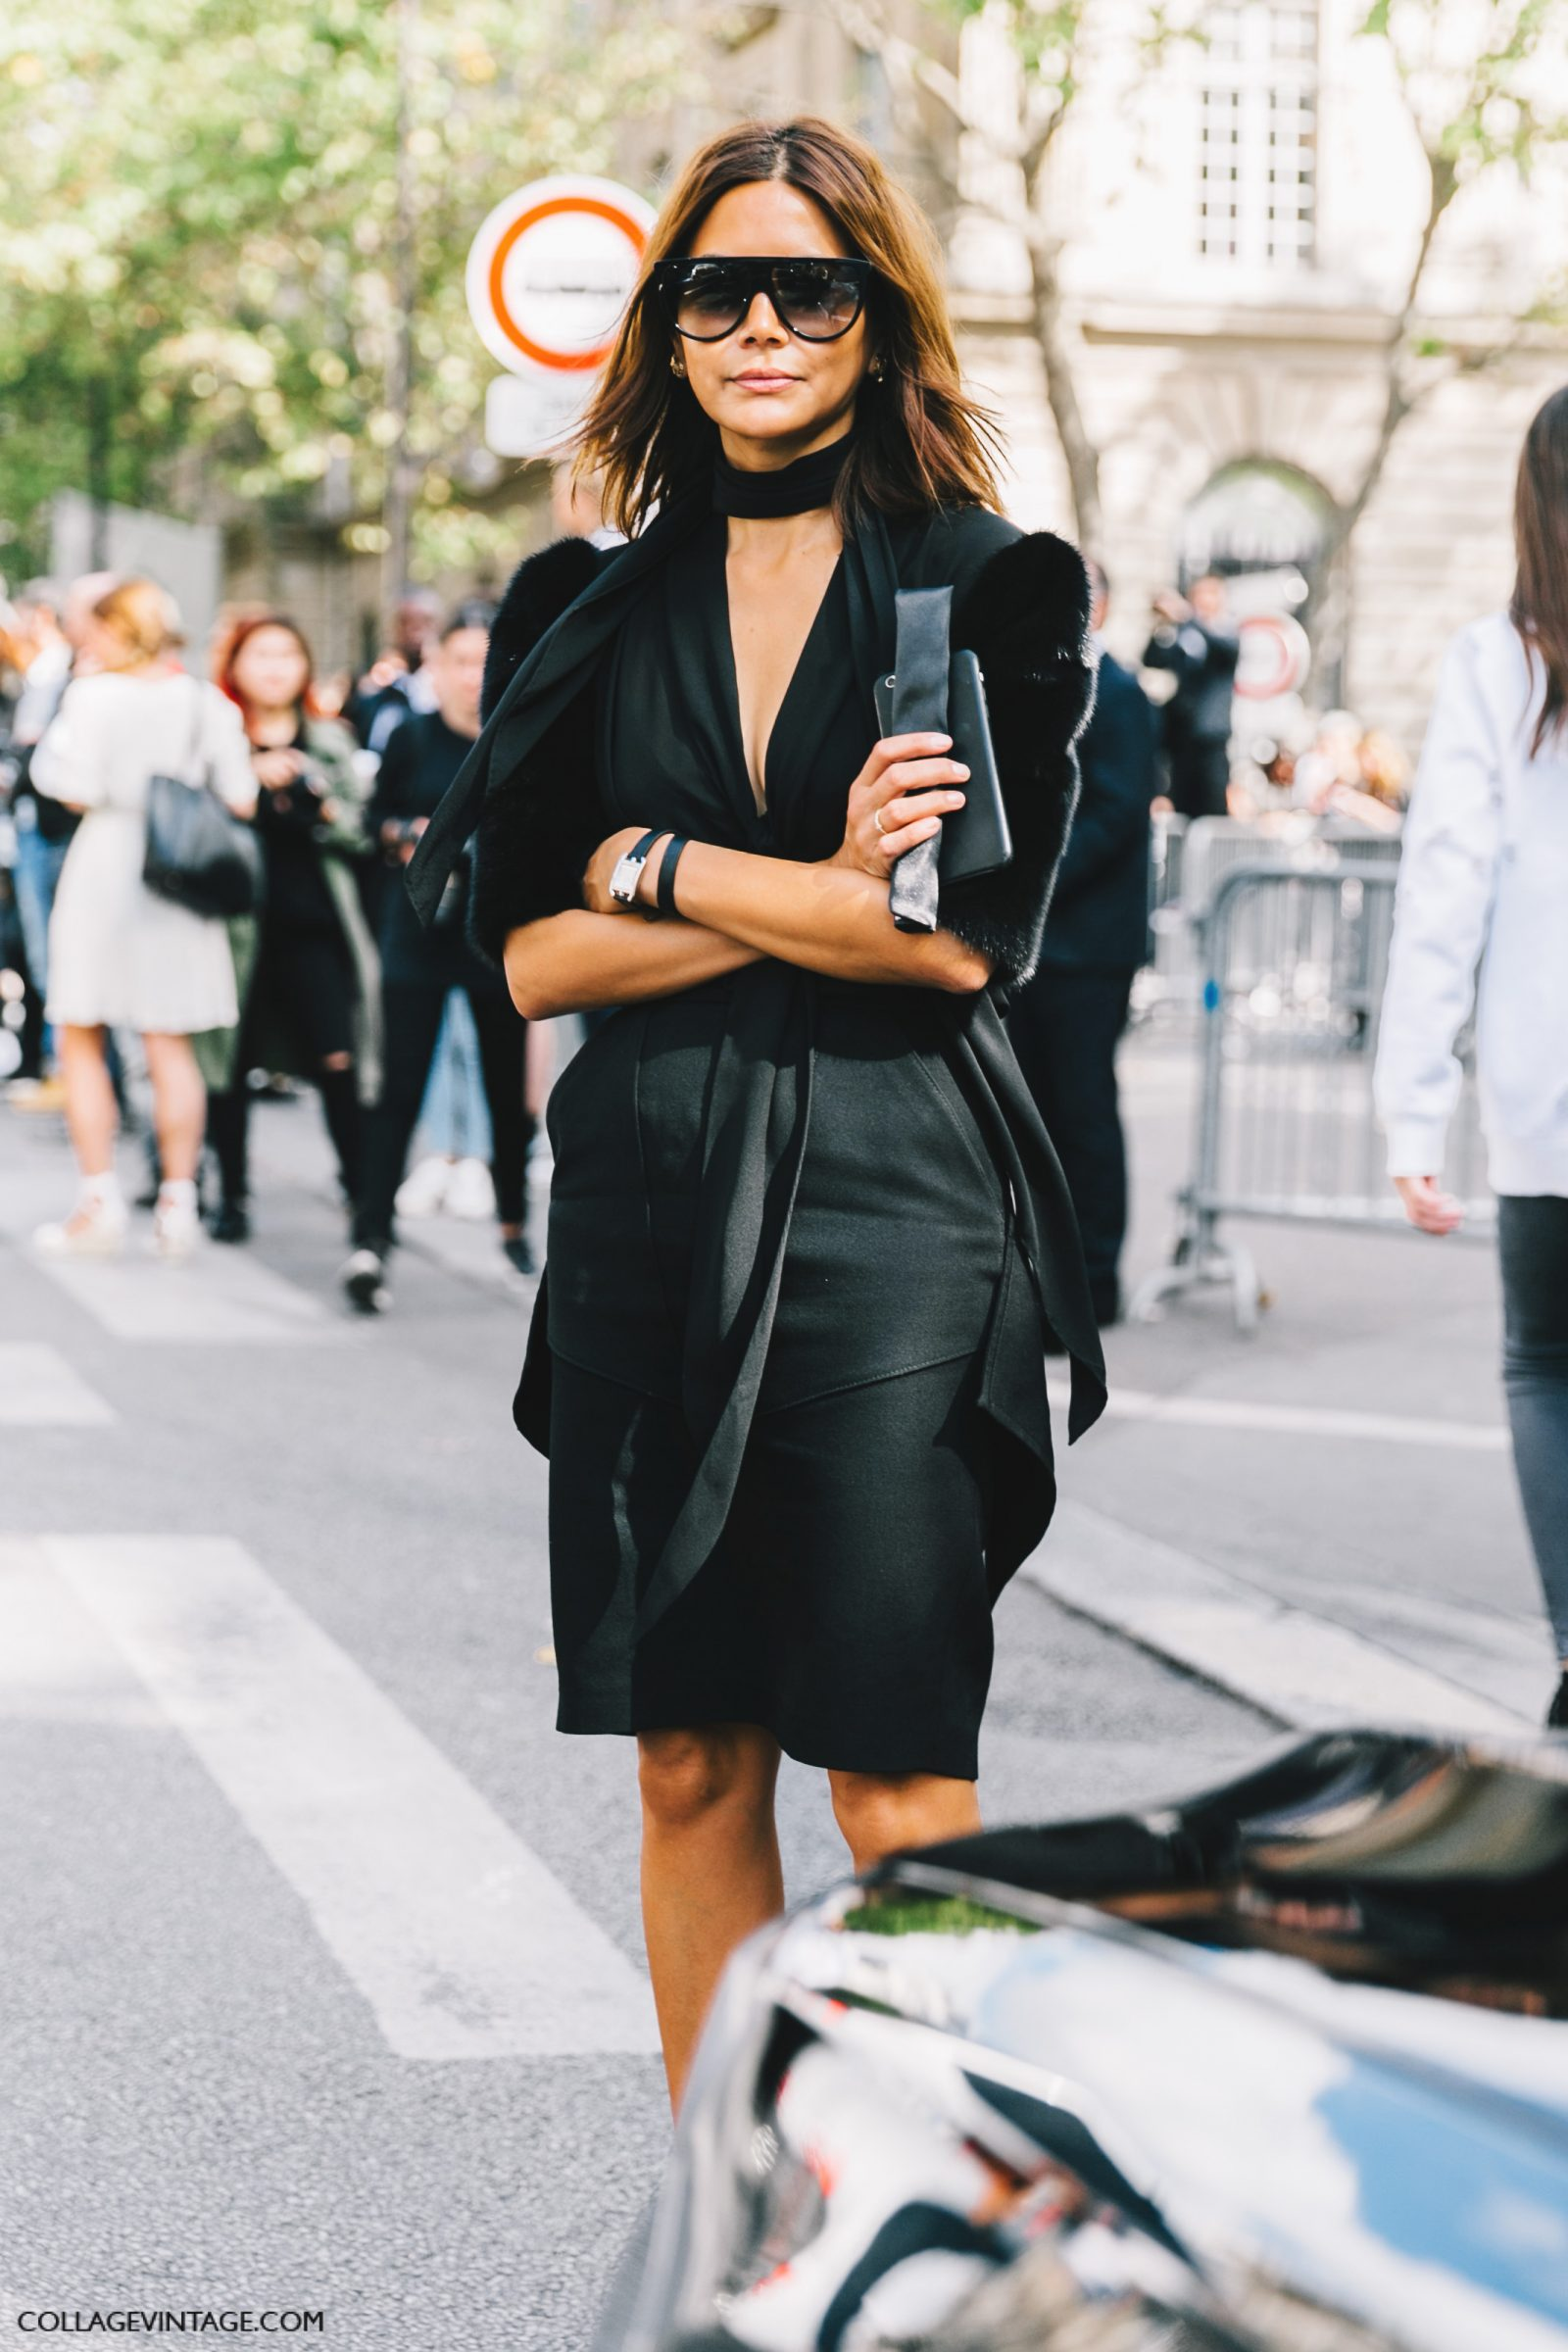 pfw-paris_fashion_week_ss17-street_style-outfits-collage_vintage-rochas-courreges-dries_van_noten-lanvin-guy_laroche-110